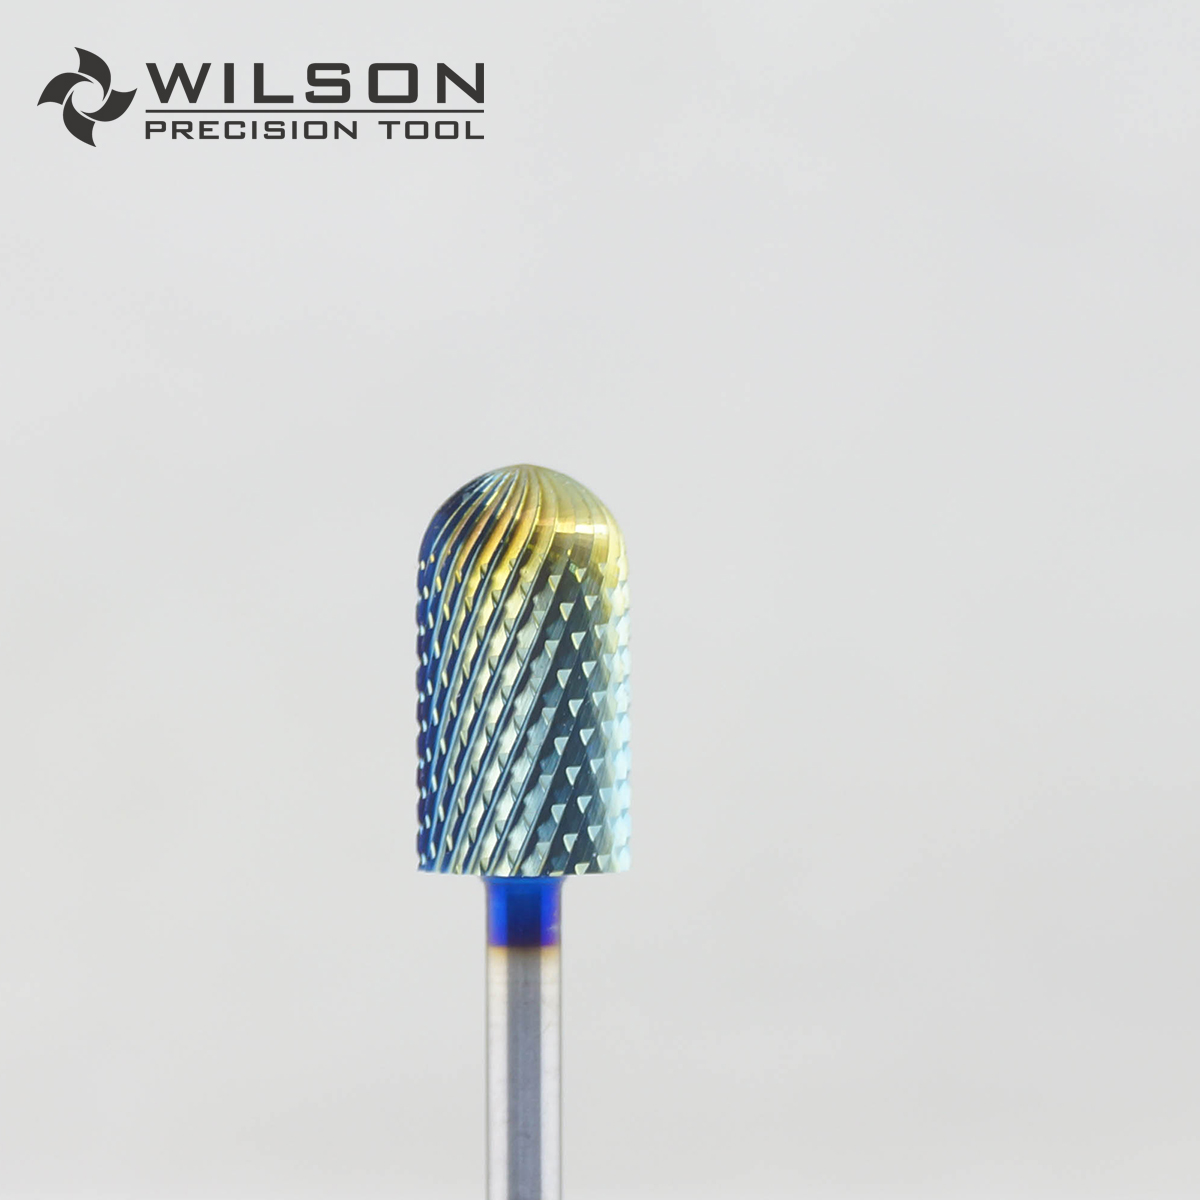 Rainbow Coating - Rounded Top - Carbide Nail Bits